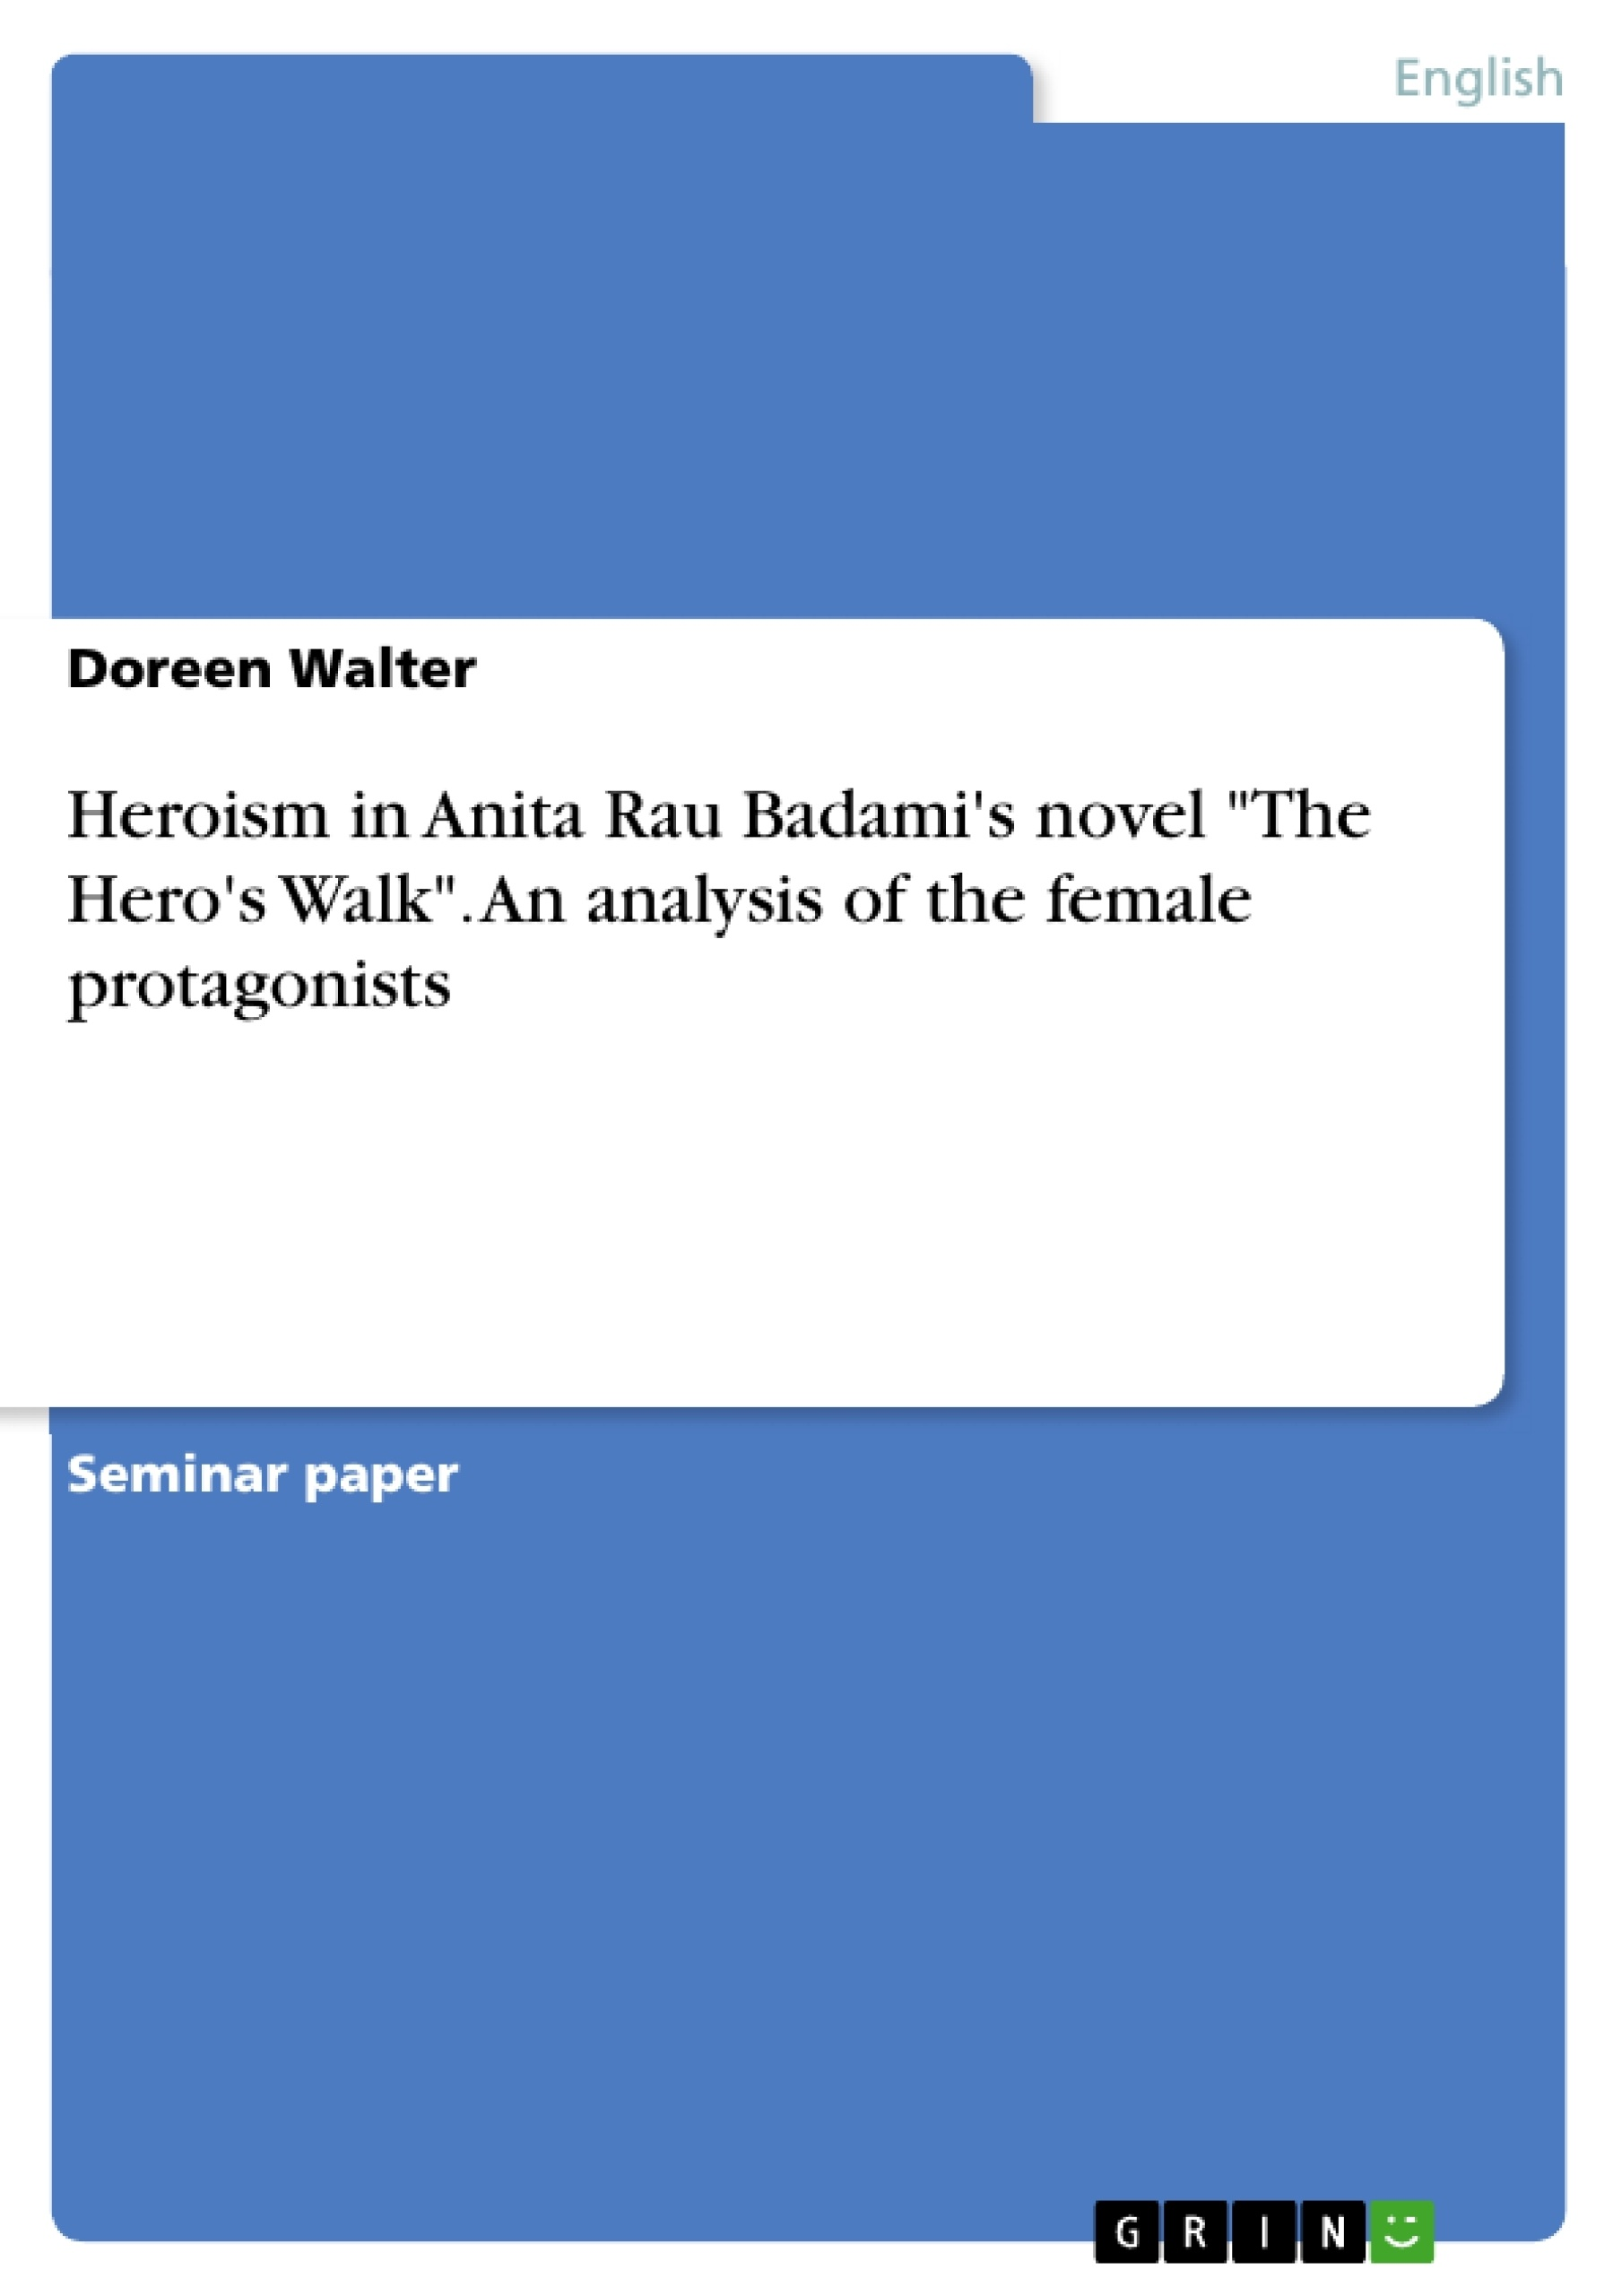 heroism in anita rau badami s novel the hero s walk an analysis heroism in anita rau badami s novel the hero s walk an analysis publish your master s thesis bachelor s thesis essay or term paper